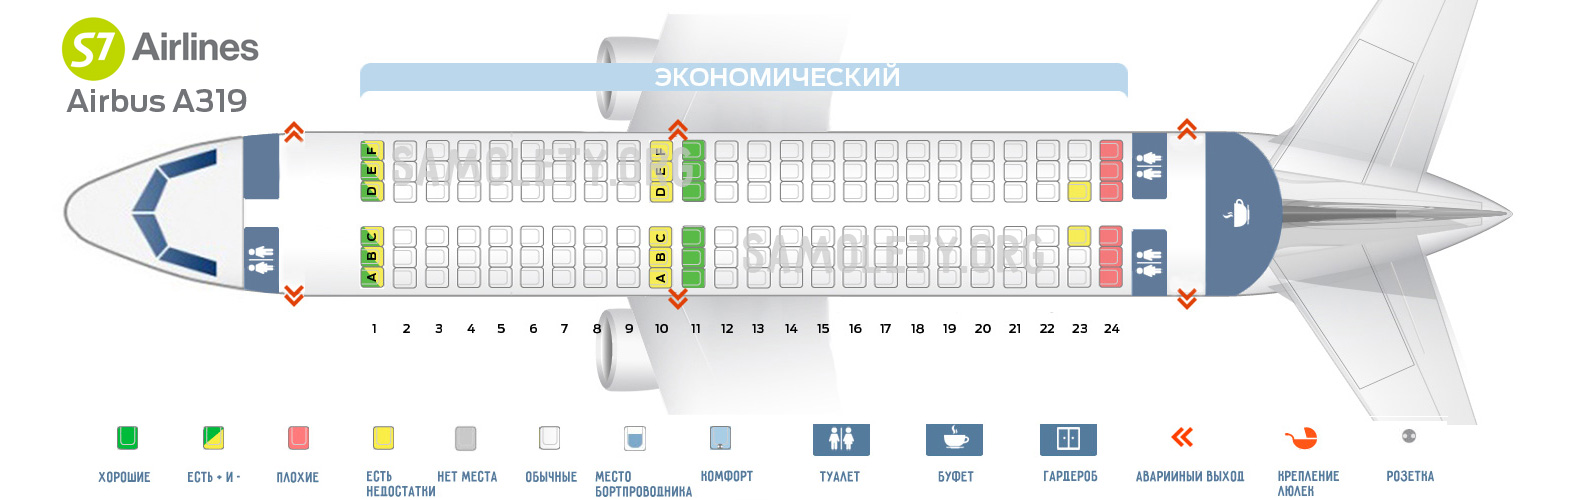 Схема Салона Airbas A319 S7 Airlines